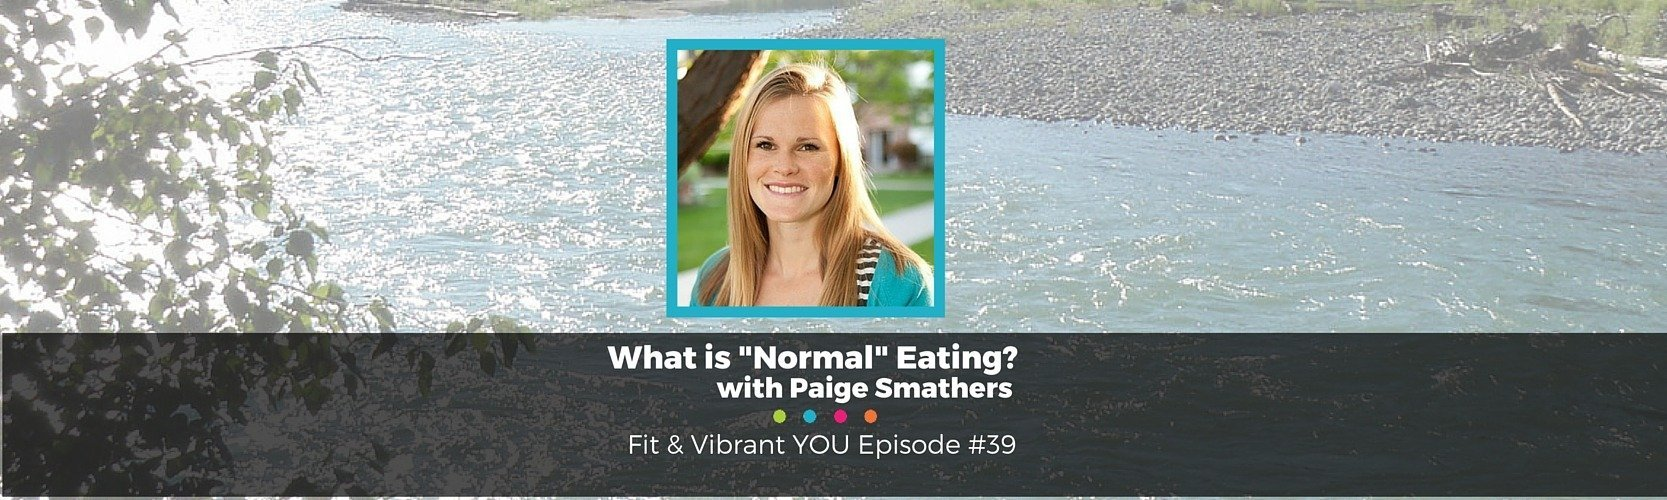 """FVY 39: What is """"Normal"""" Eating? with Paige Smathers"""